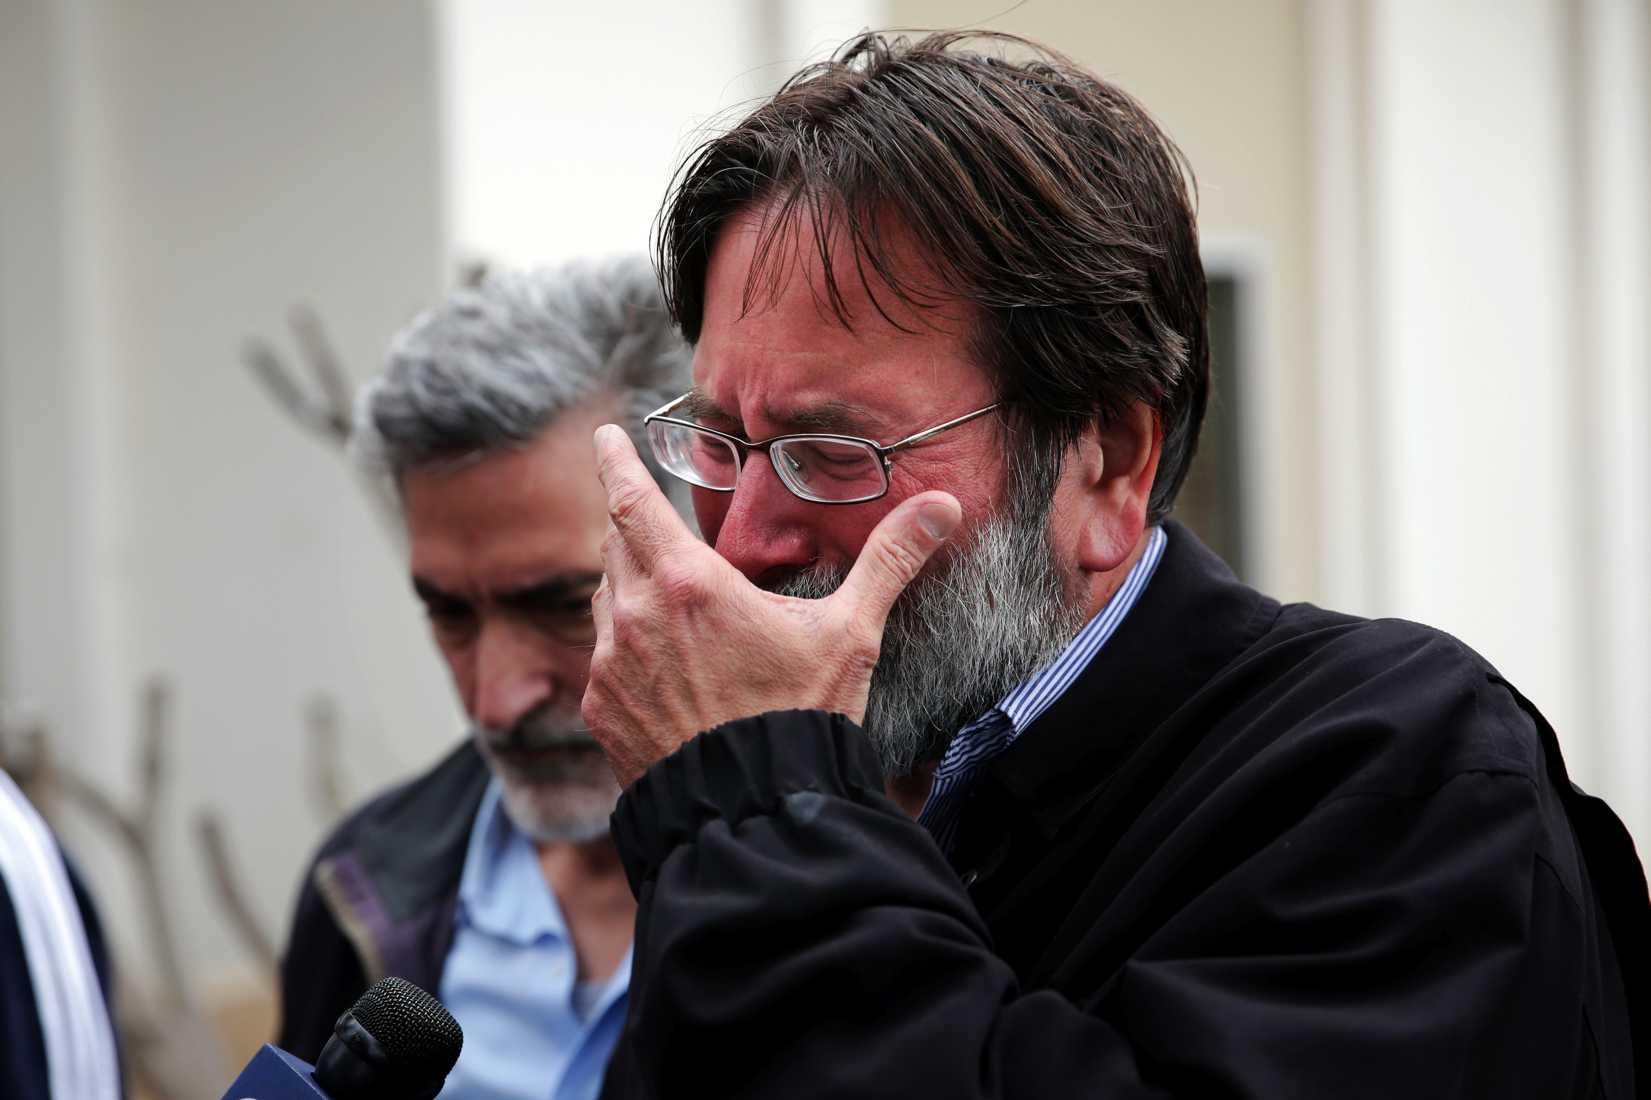 Richard Martinez, whose son Christopher was killed in a mass shooting  in Isla Vista, Calif., breaks down as he talks to media outside the Santa Barbara County Sheriff's Office on May 24, 2014, in Santa Barbara, Calif.